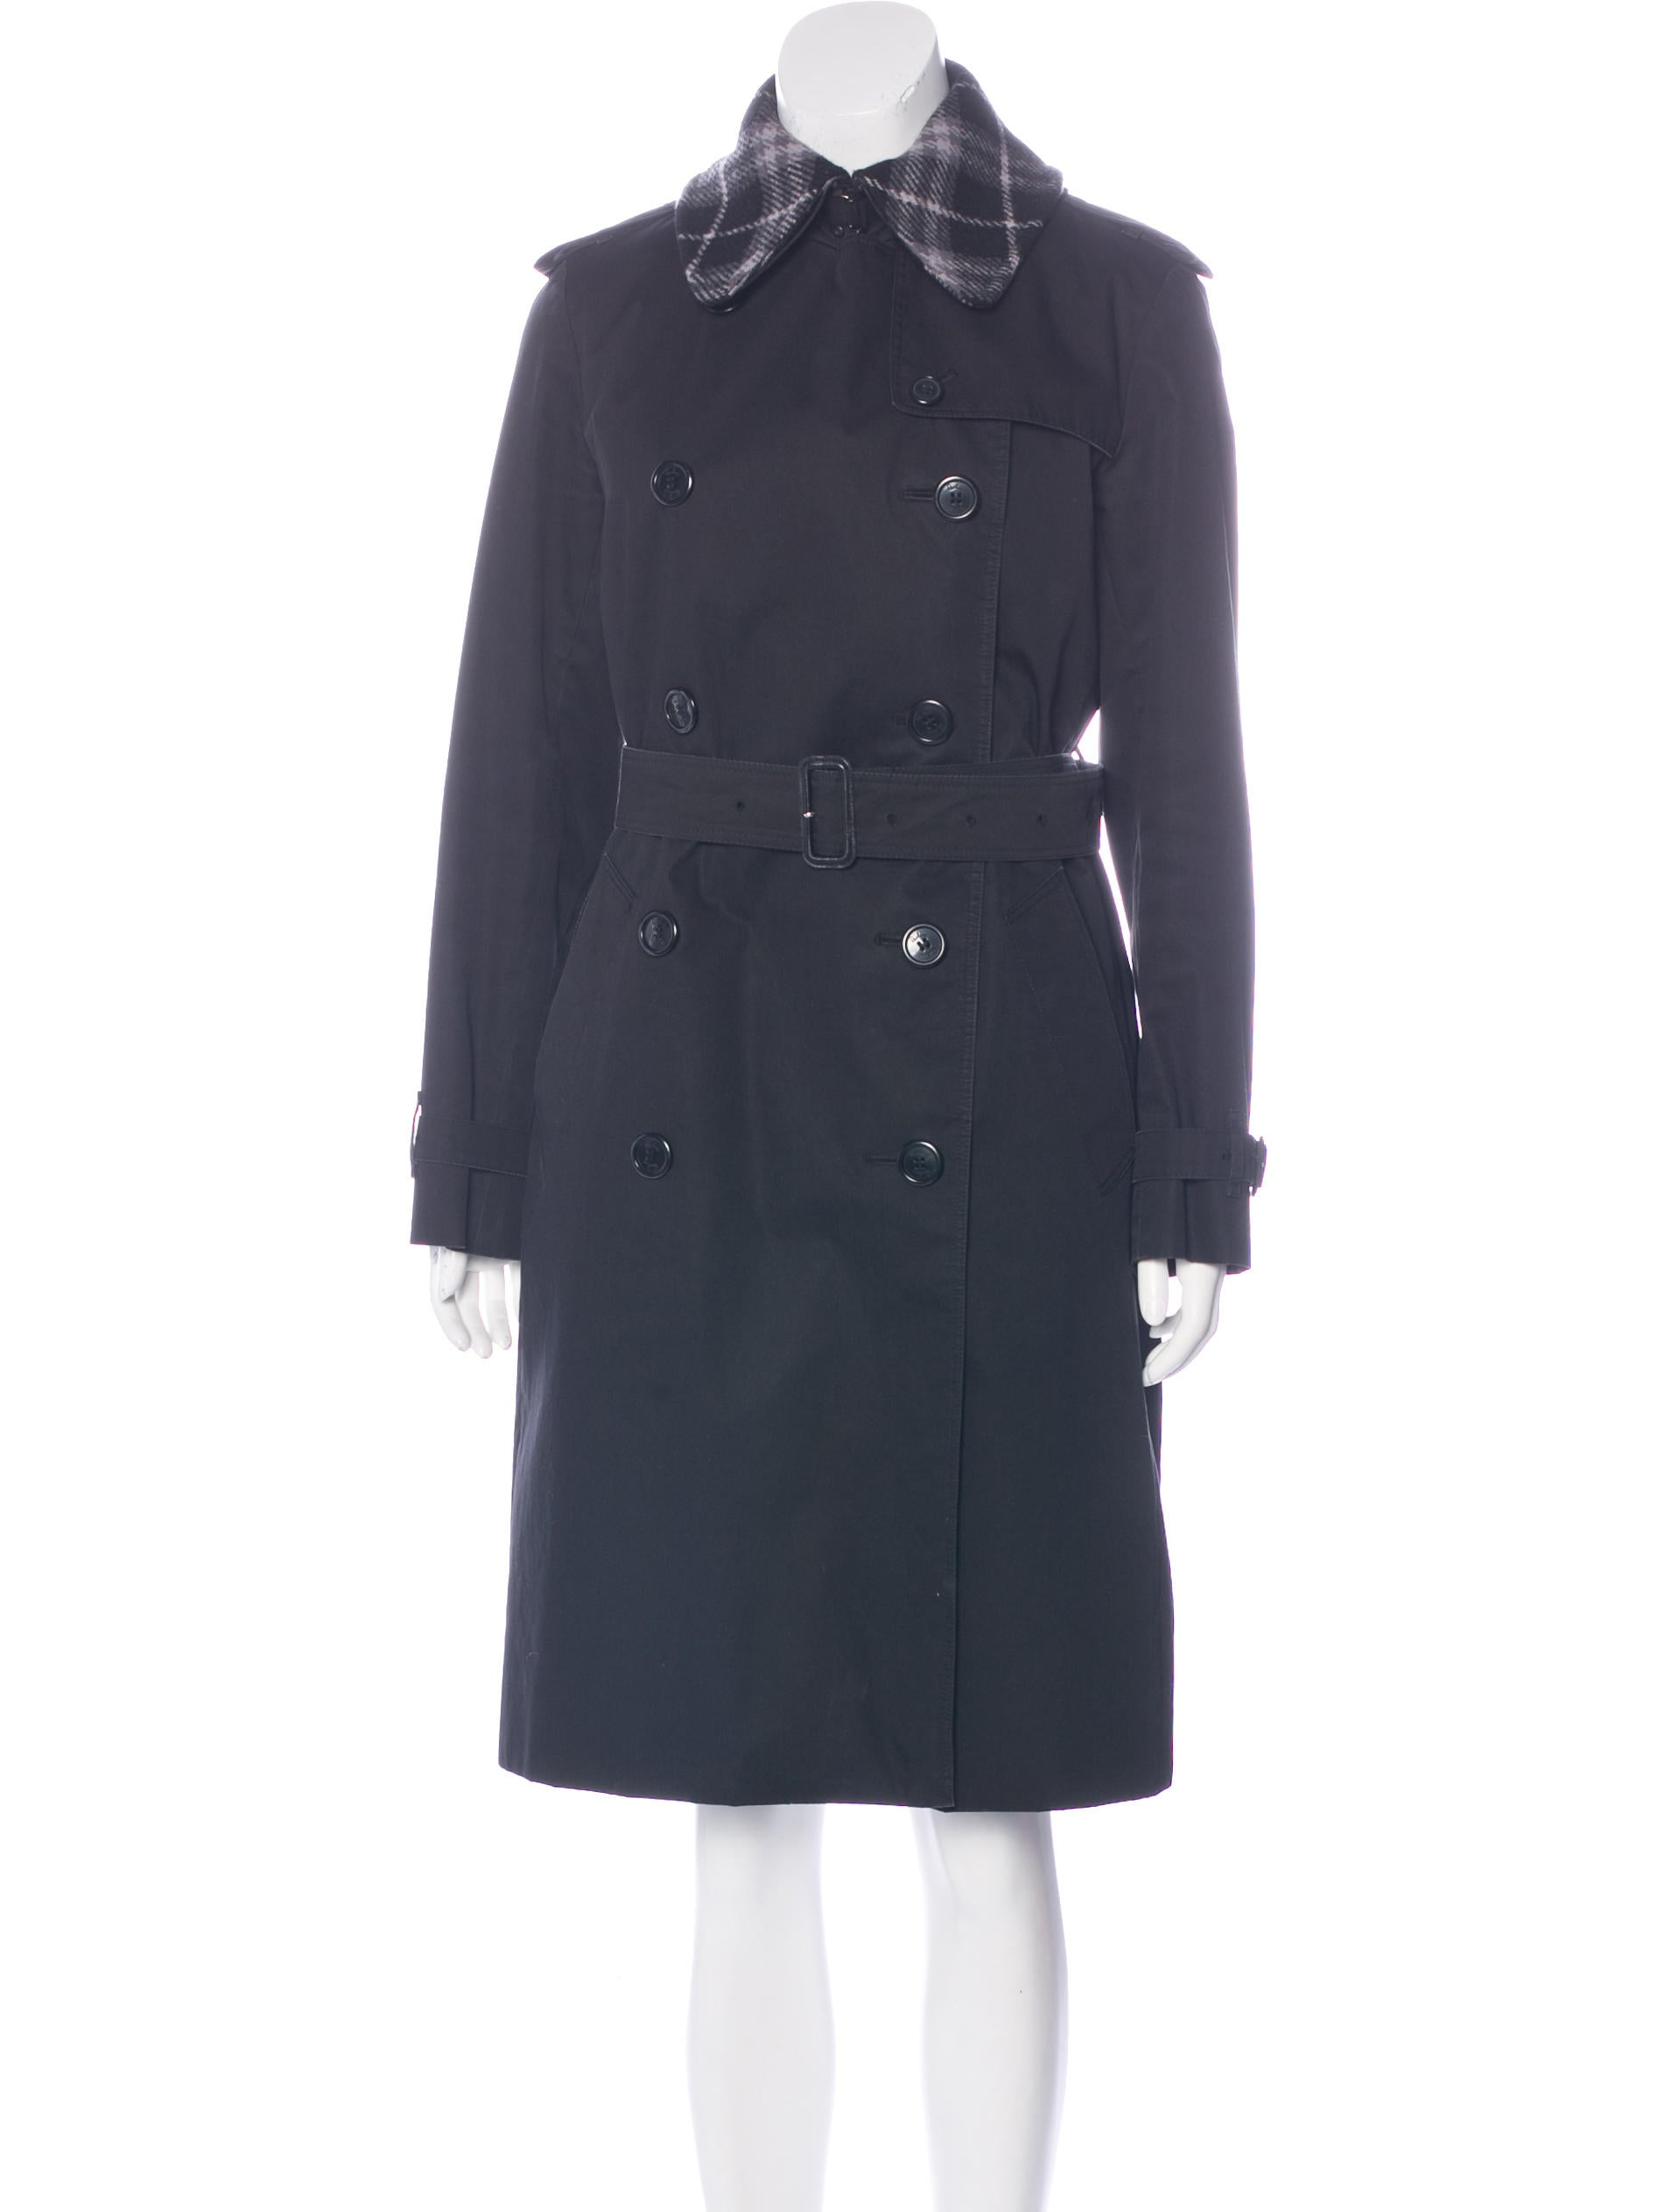 Lined Trench Coat Women - results from brands Cutter & Buck, Unique Bargains, Simplicity, products like Tri-Mountain Sasha Women's Lined Trench Coat BLACK WM, Mach Trench Coat - Black - Chapter Coats, The Nightmare Before Christmas Jack Face Lined Hooded Trench Coat Sz MEDIUM NWT, Women's Outerwear.